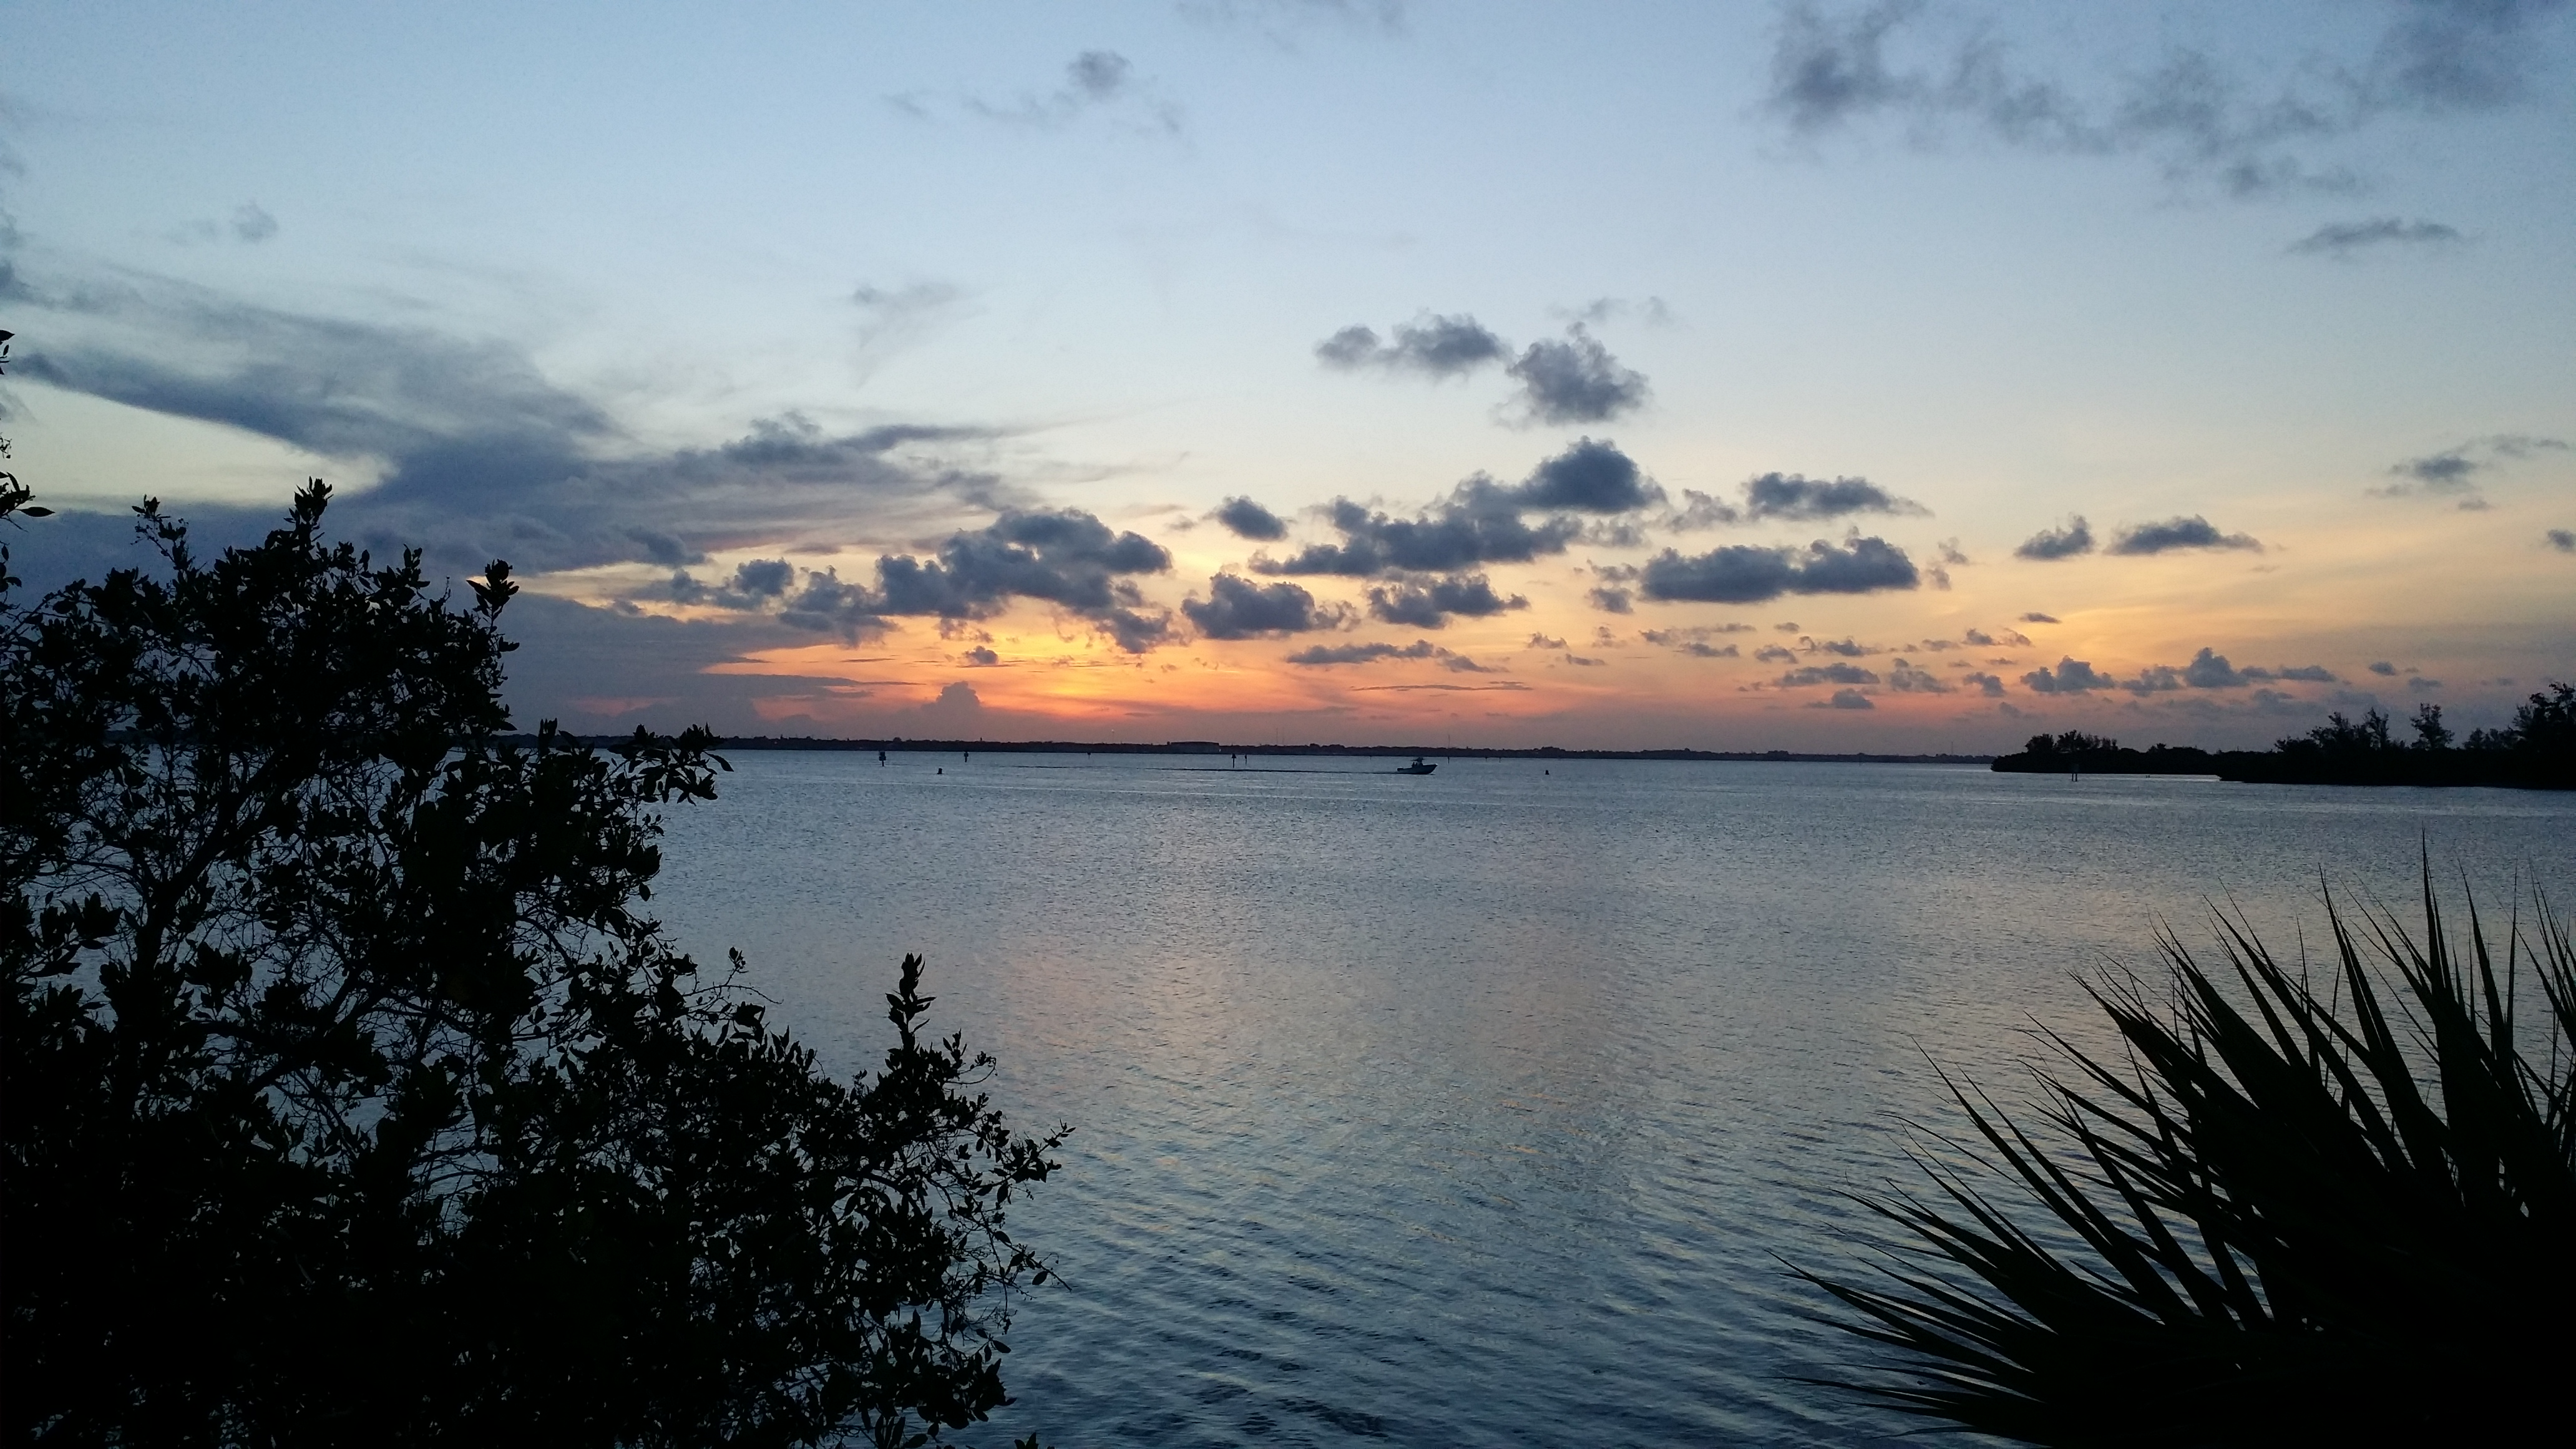 Sunset at the Indian River Lagoon